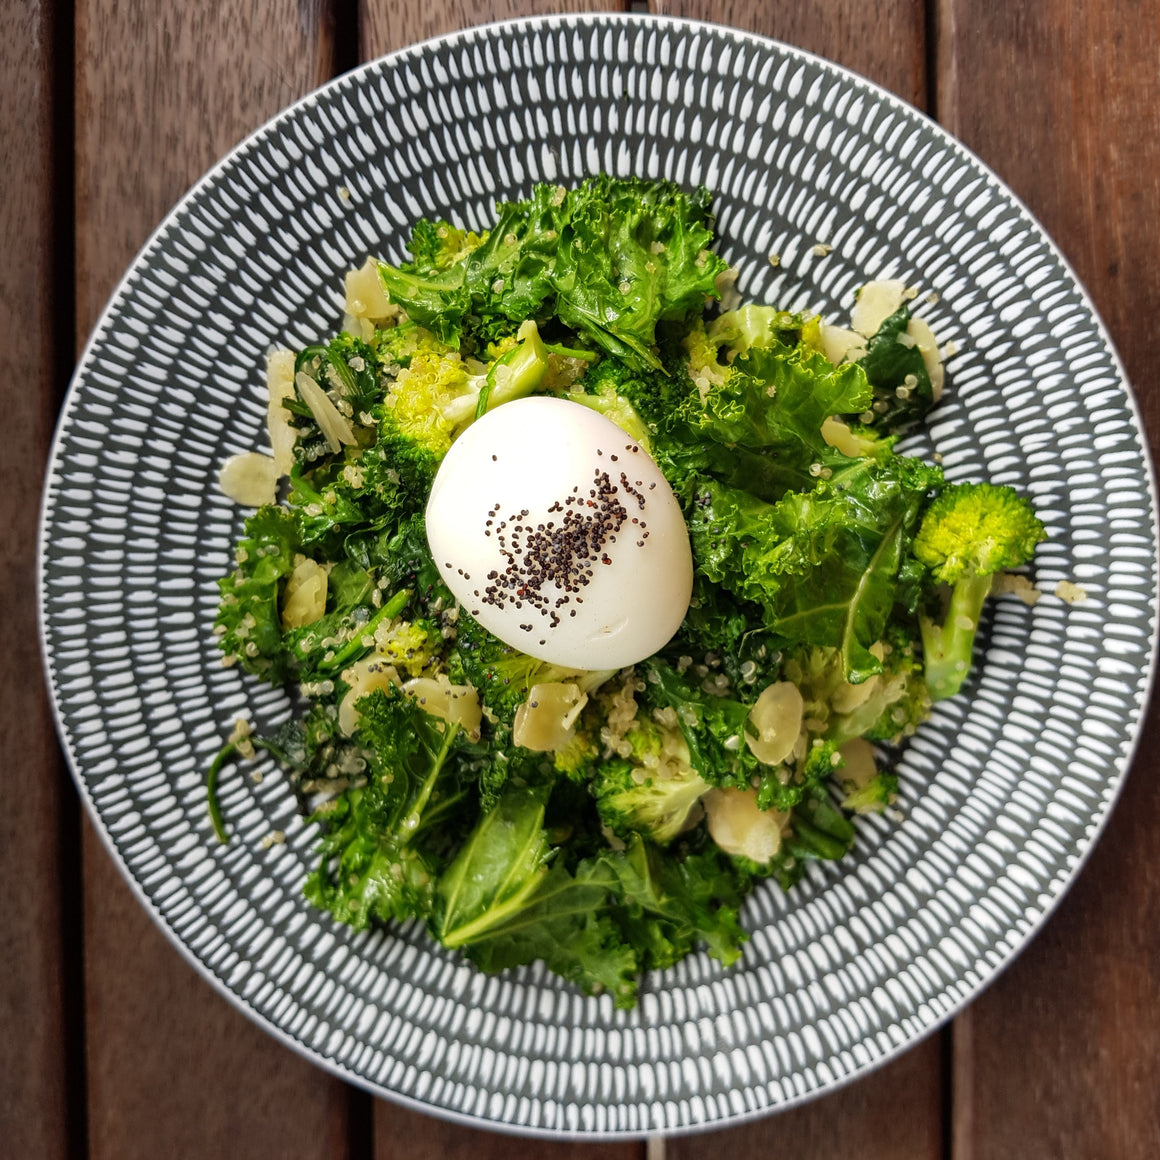 Quinoa Kale Salad - 300g - Foddies Low FODMAP